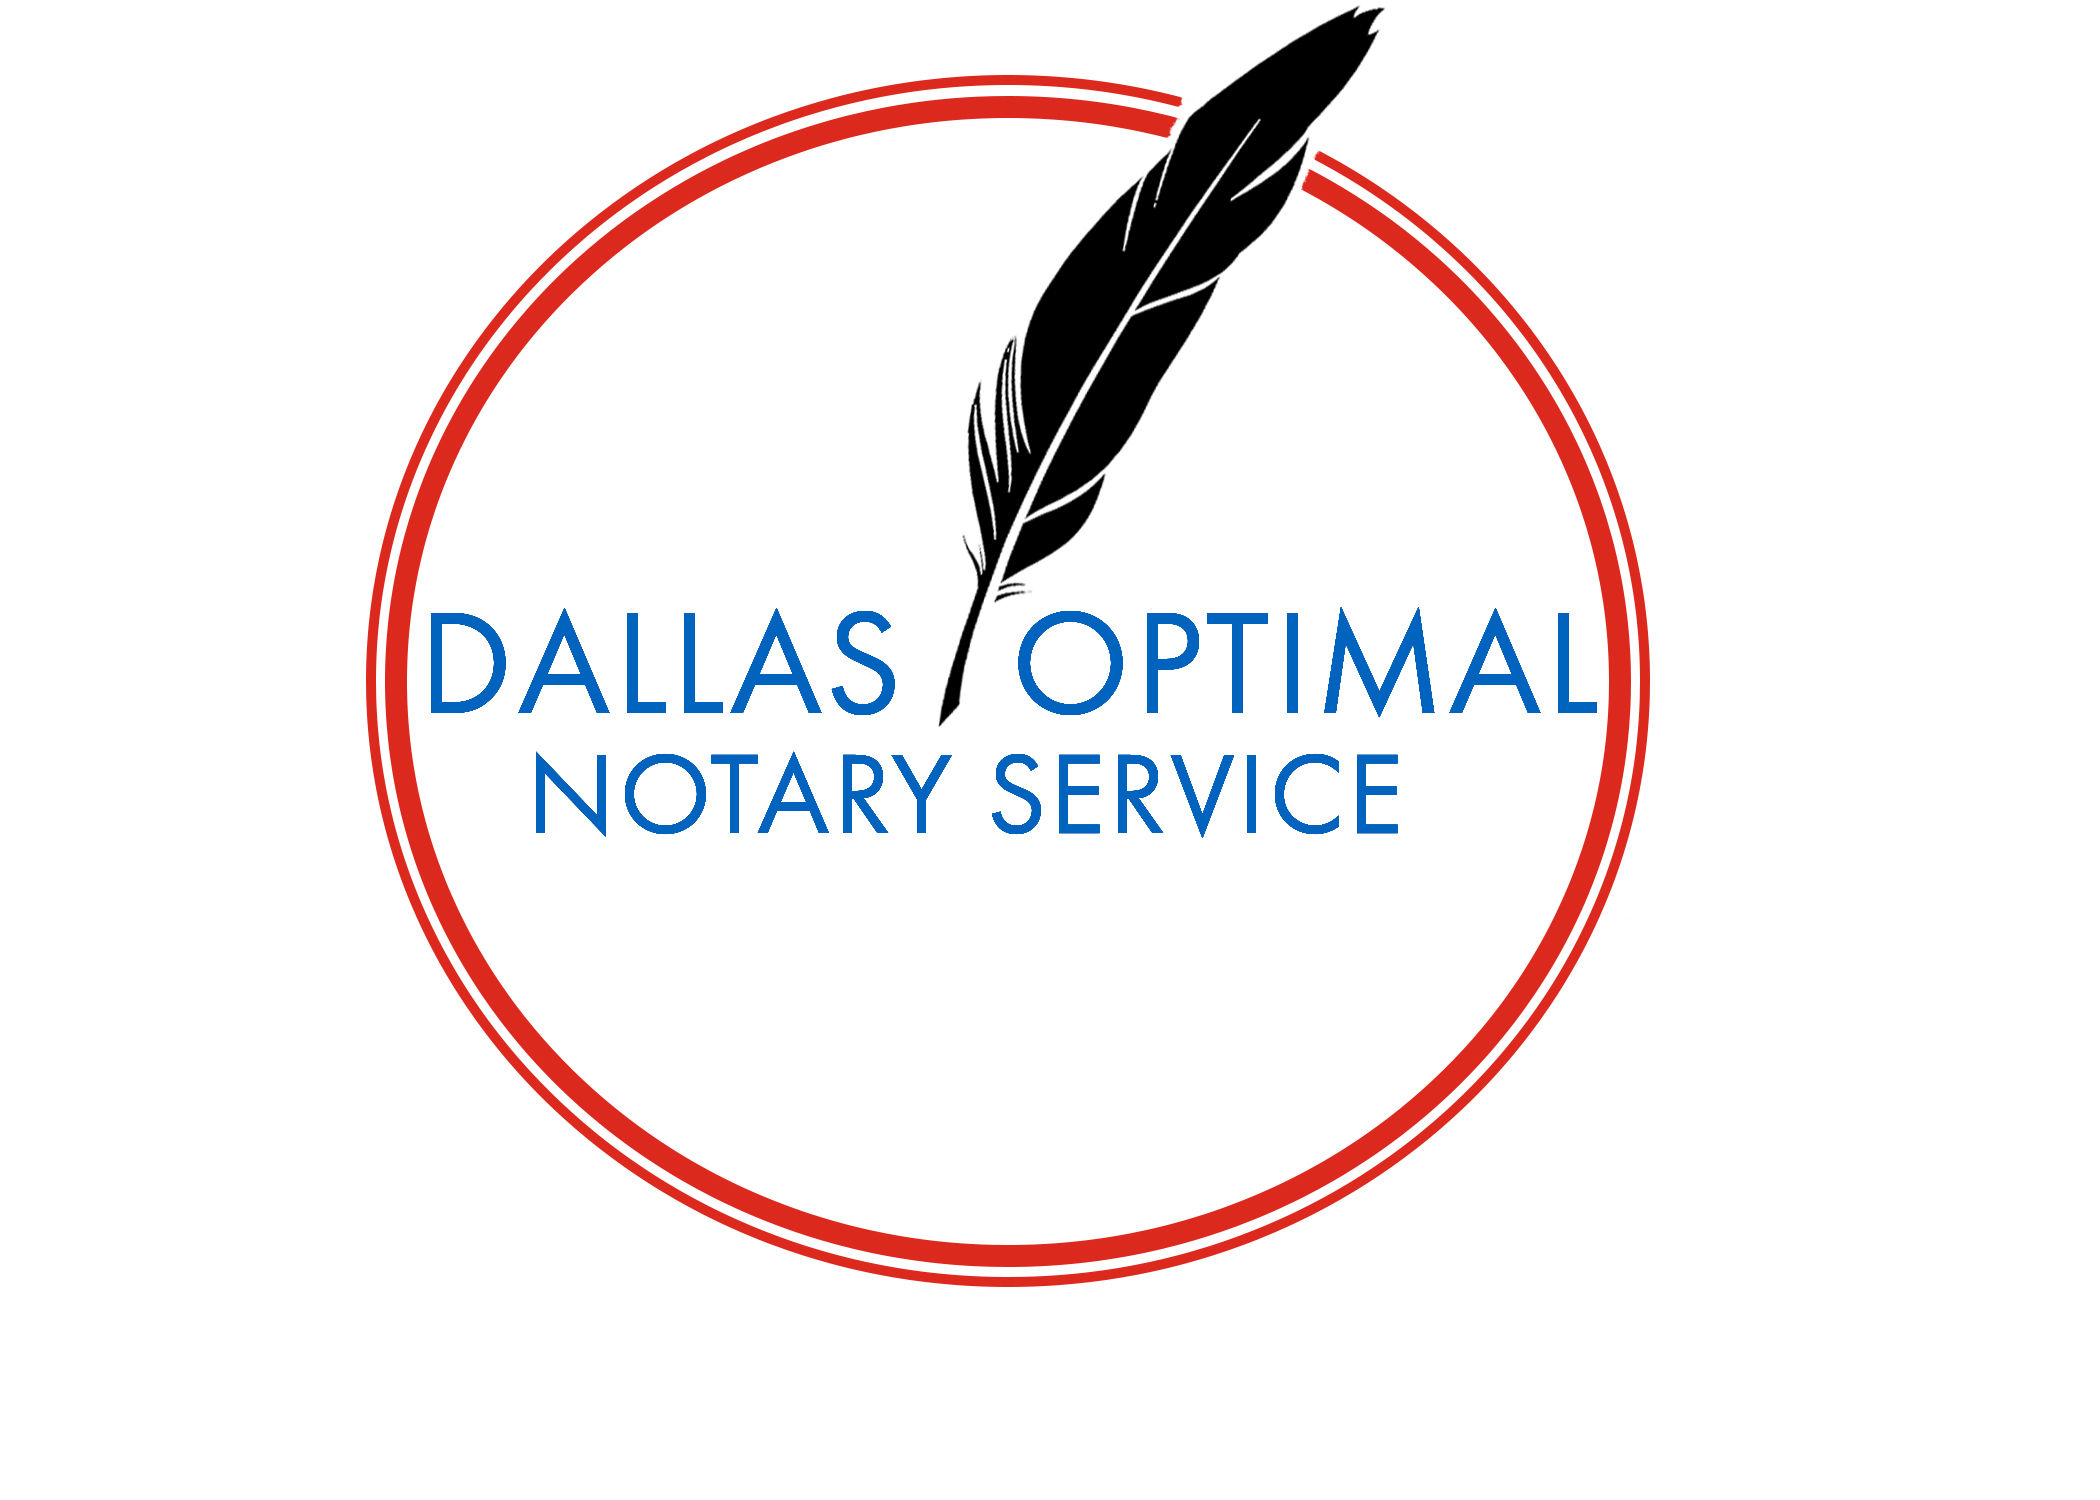 Dallas Optimal Notary Services